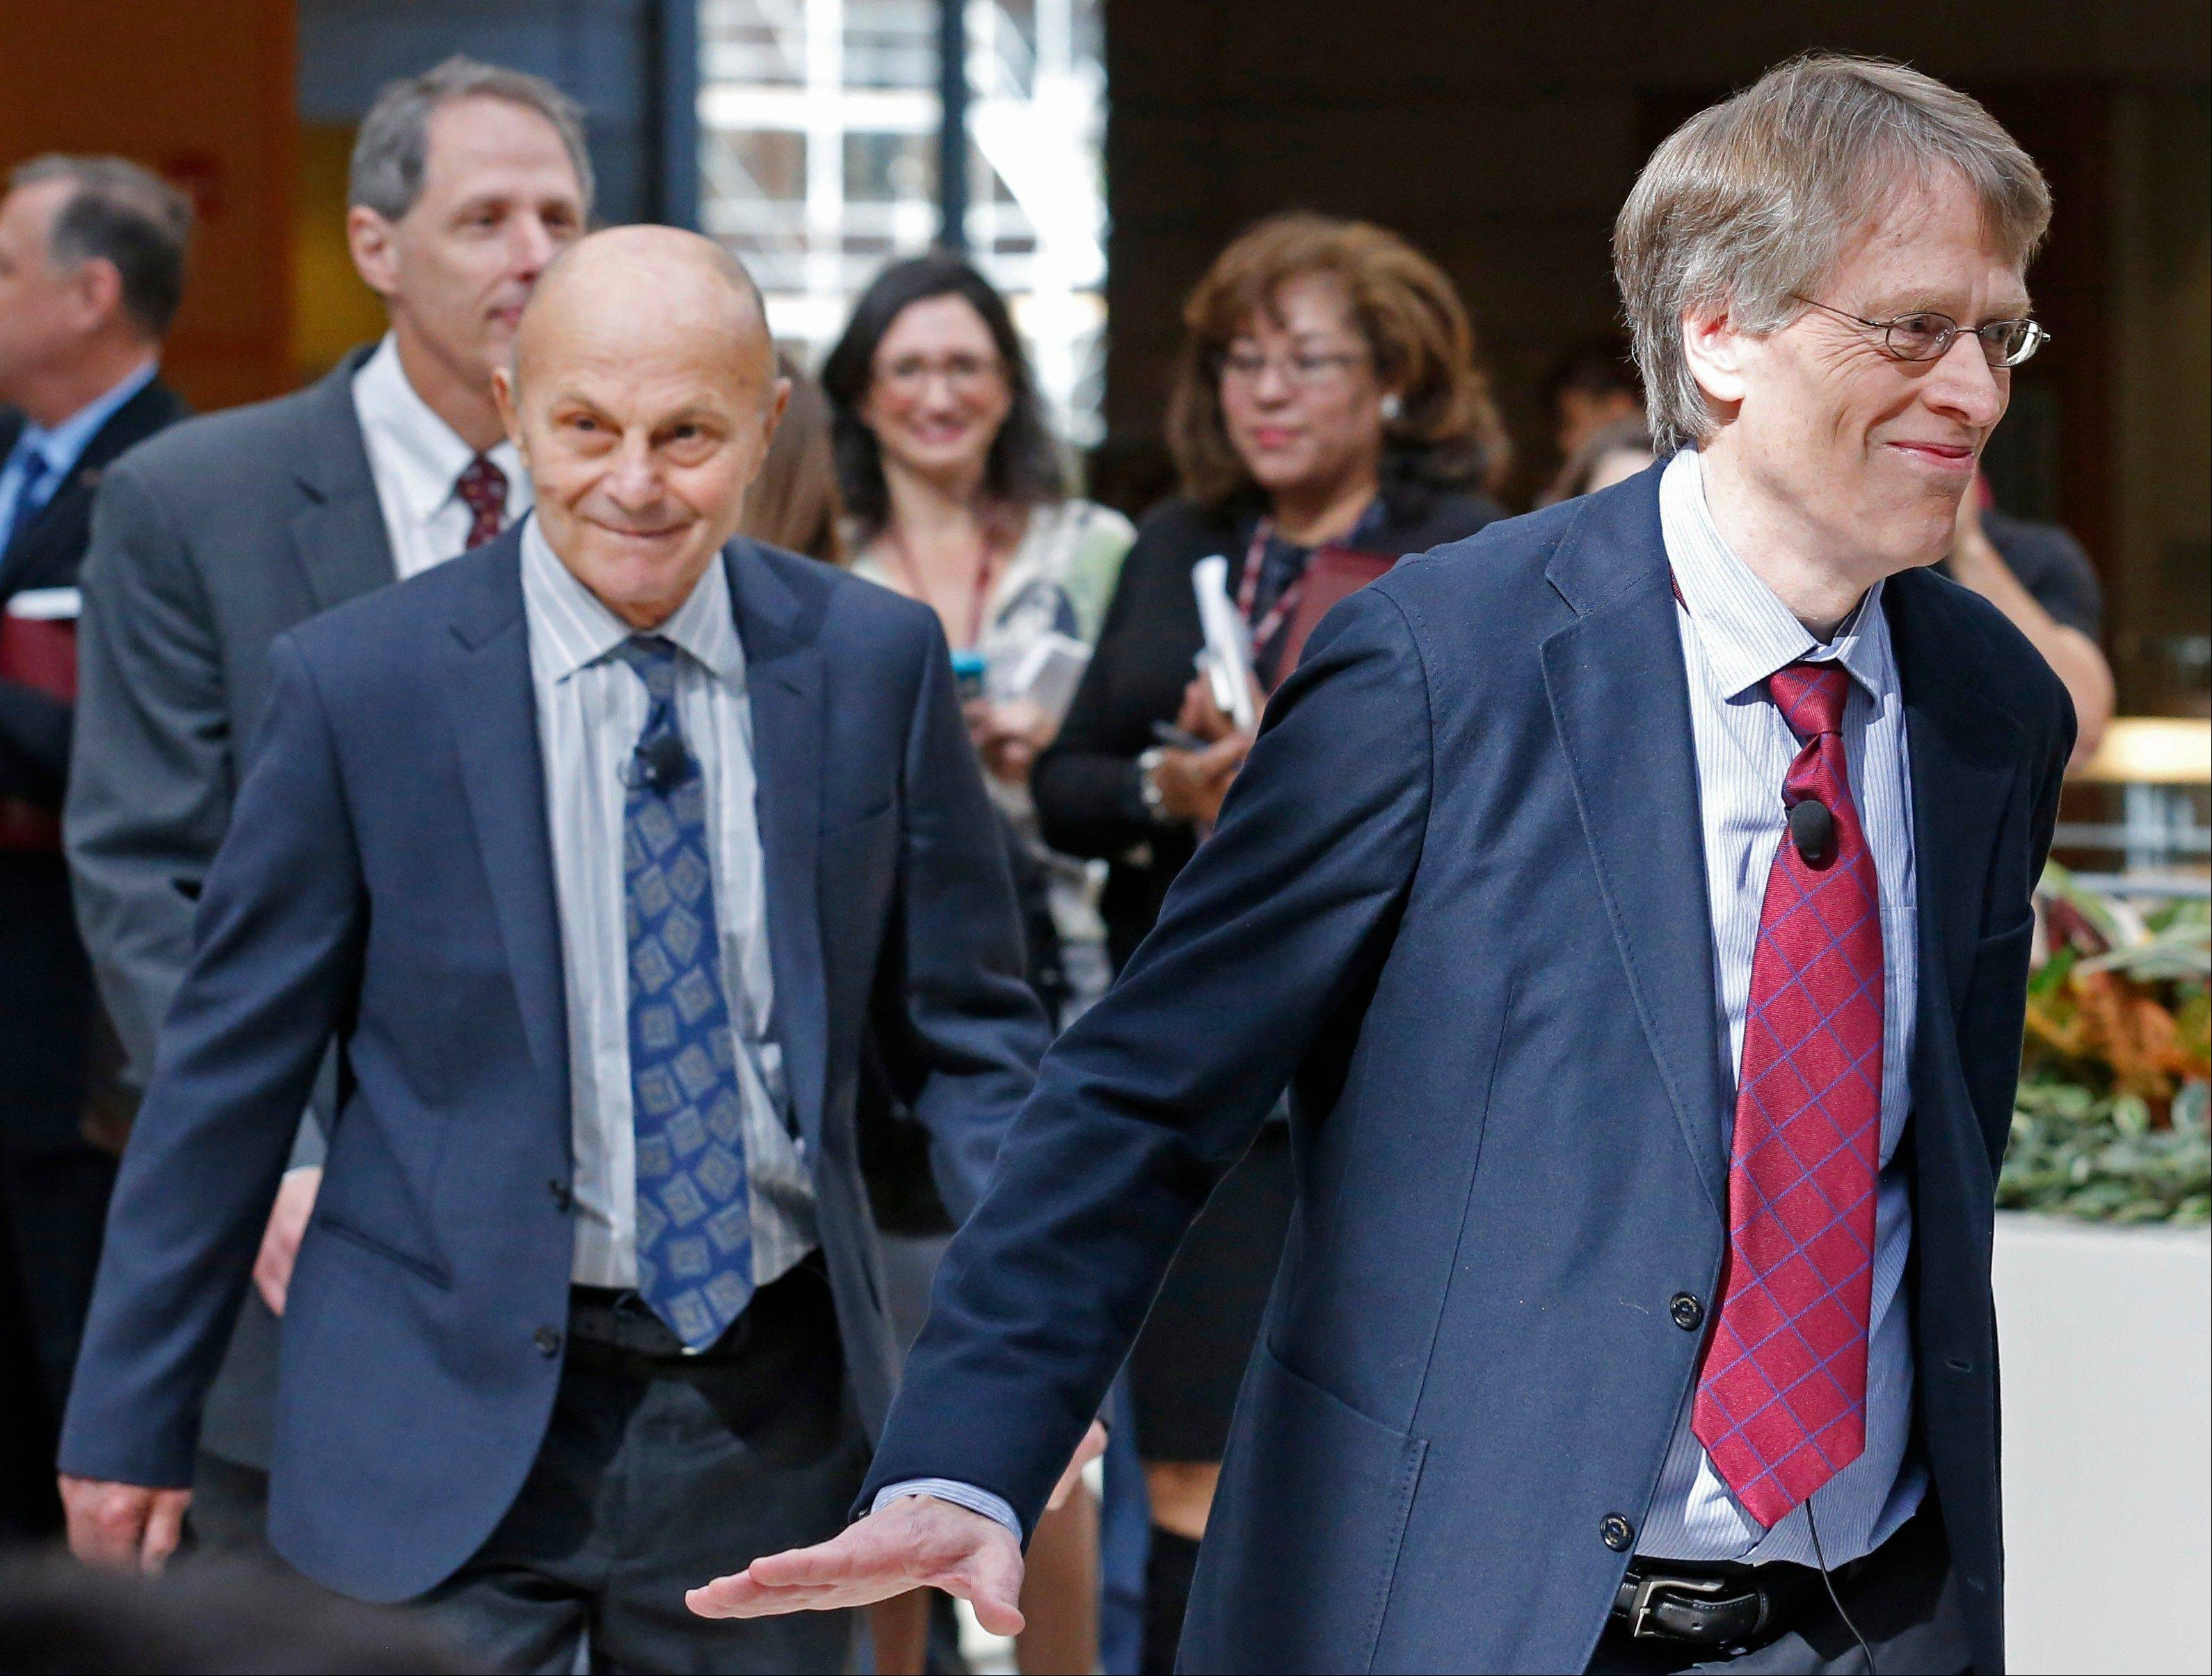 Lars Peter Hansen, 60, right, and Eugene Fama, 74, left, of the University of Chicago arrive at a news conference Monday in Chicago after being named two of the three winners of the Nobel Prize for Economics.